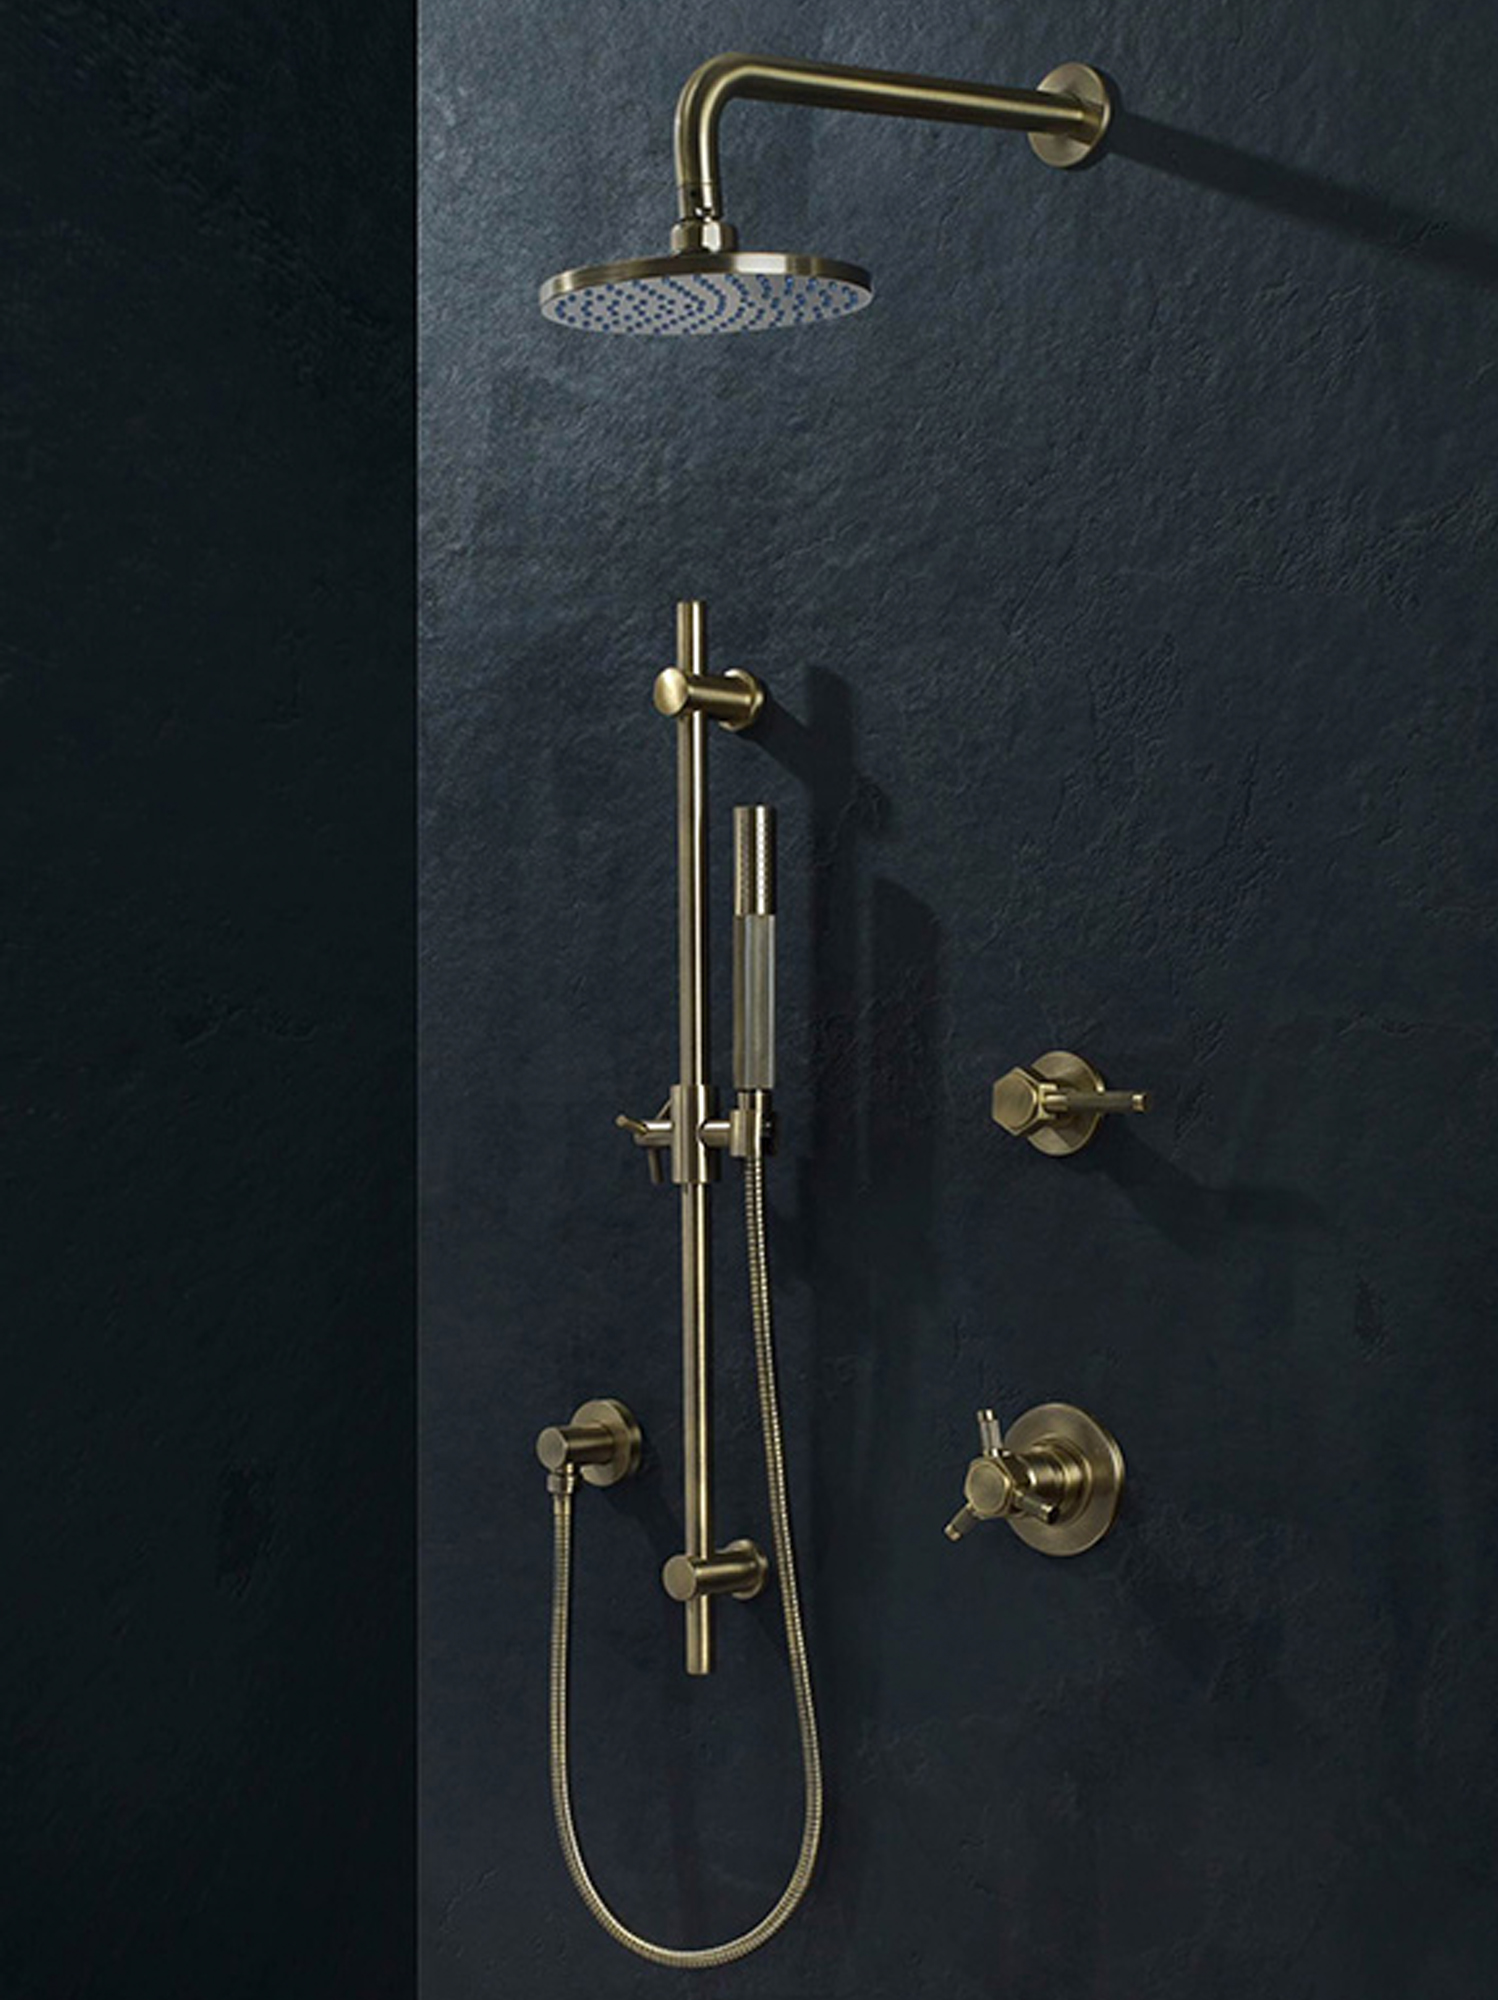 The thermostatic shower by Watermark Designs has built-in volume control and diverter in one.